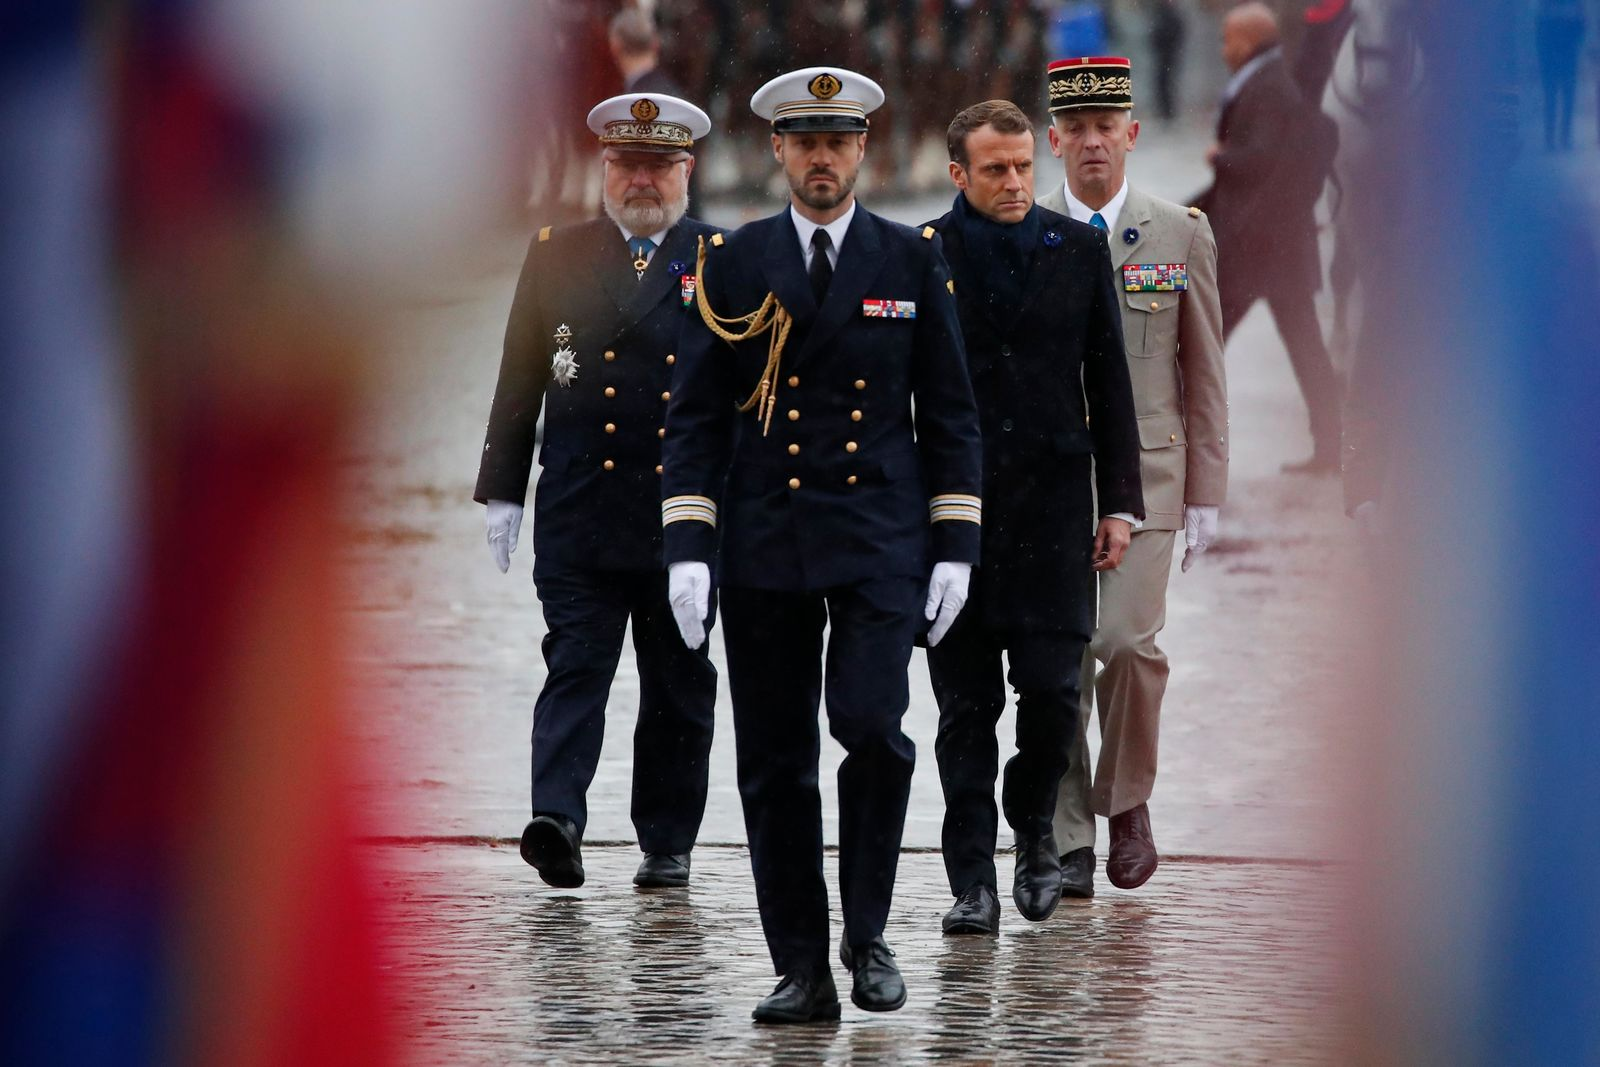 French President Emmanuel Macron, second right, arrives at the Arc de Triomphe in Paris Monday Nov. 11, 2019 before the start of the commemorations marking the 101st anniversary of the 1918 armistice, ending World War I. (AP Photo/Francois Mori, Pool)